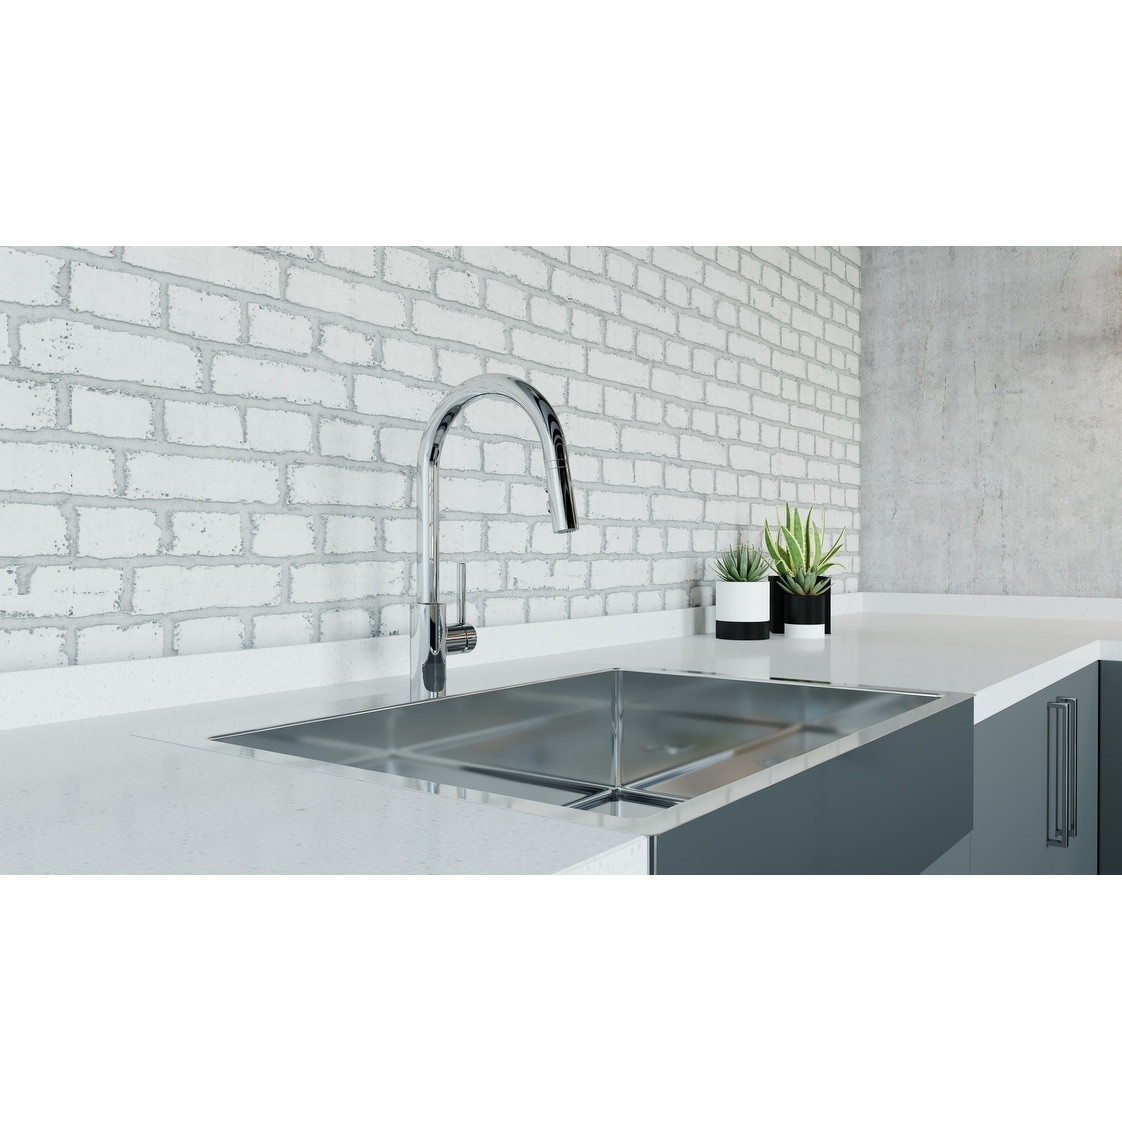 Shop pfister lg529 esa stellen pull out spray kitchen faucet with react touchless technology free shipping today overstock 21138034